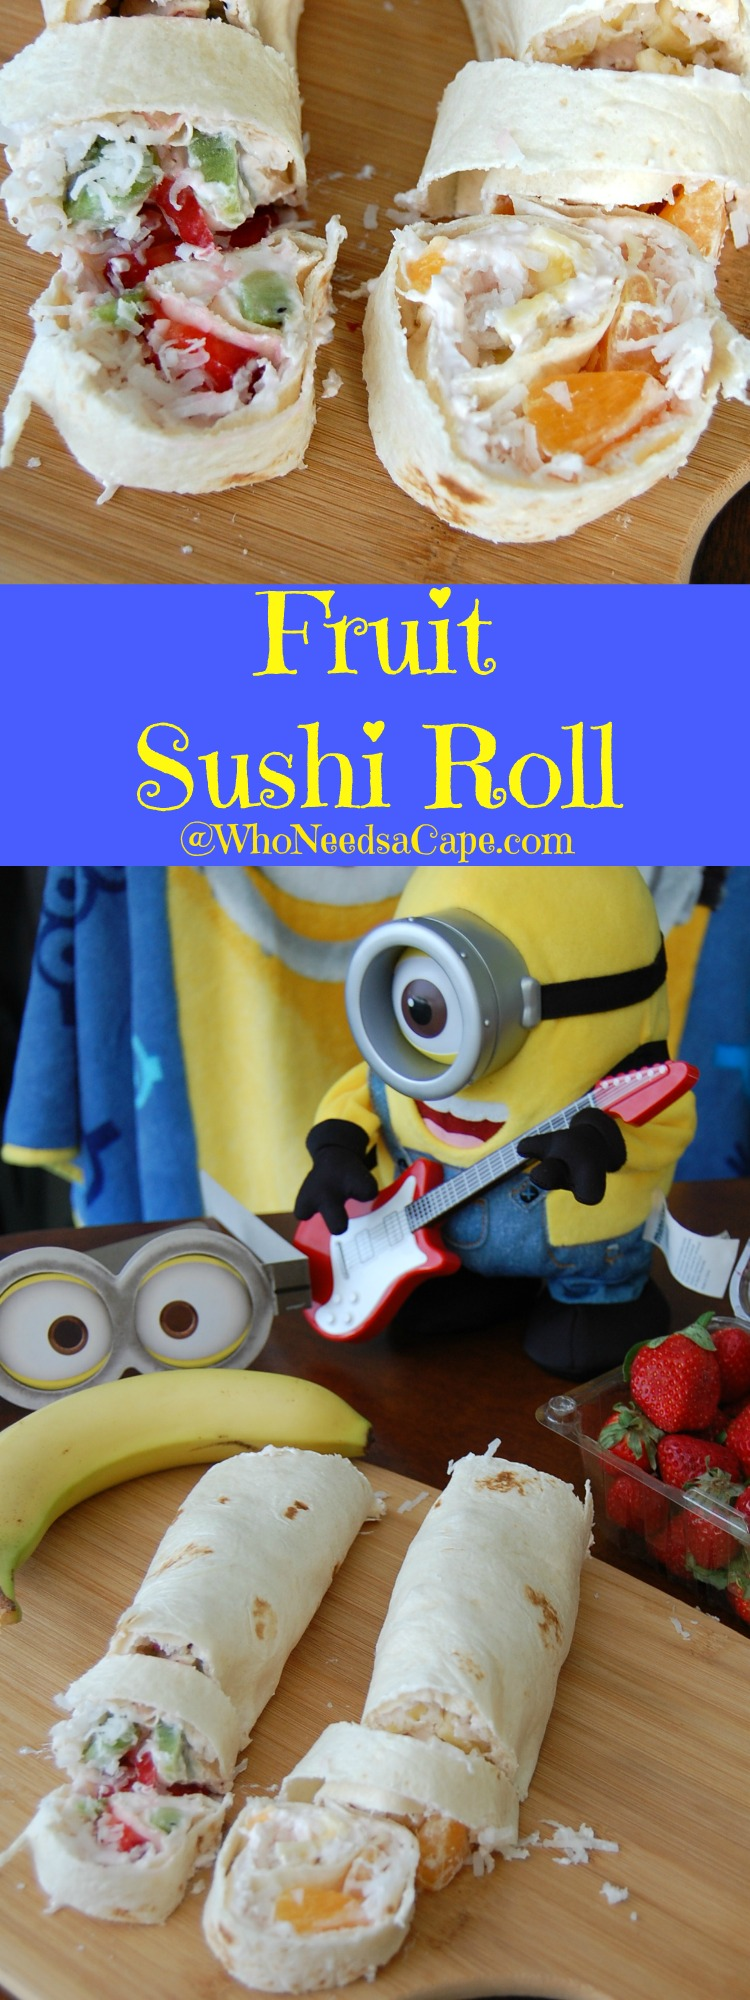 Fruit sushi Rolls are a delightful snack that is easy to make and tastes great!